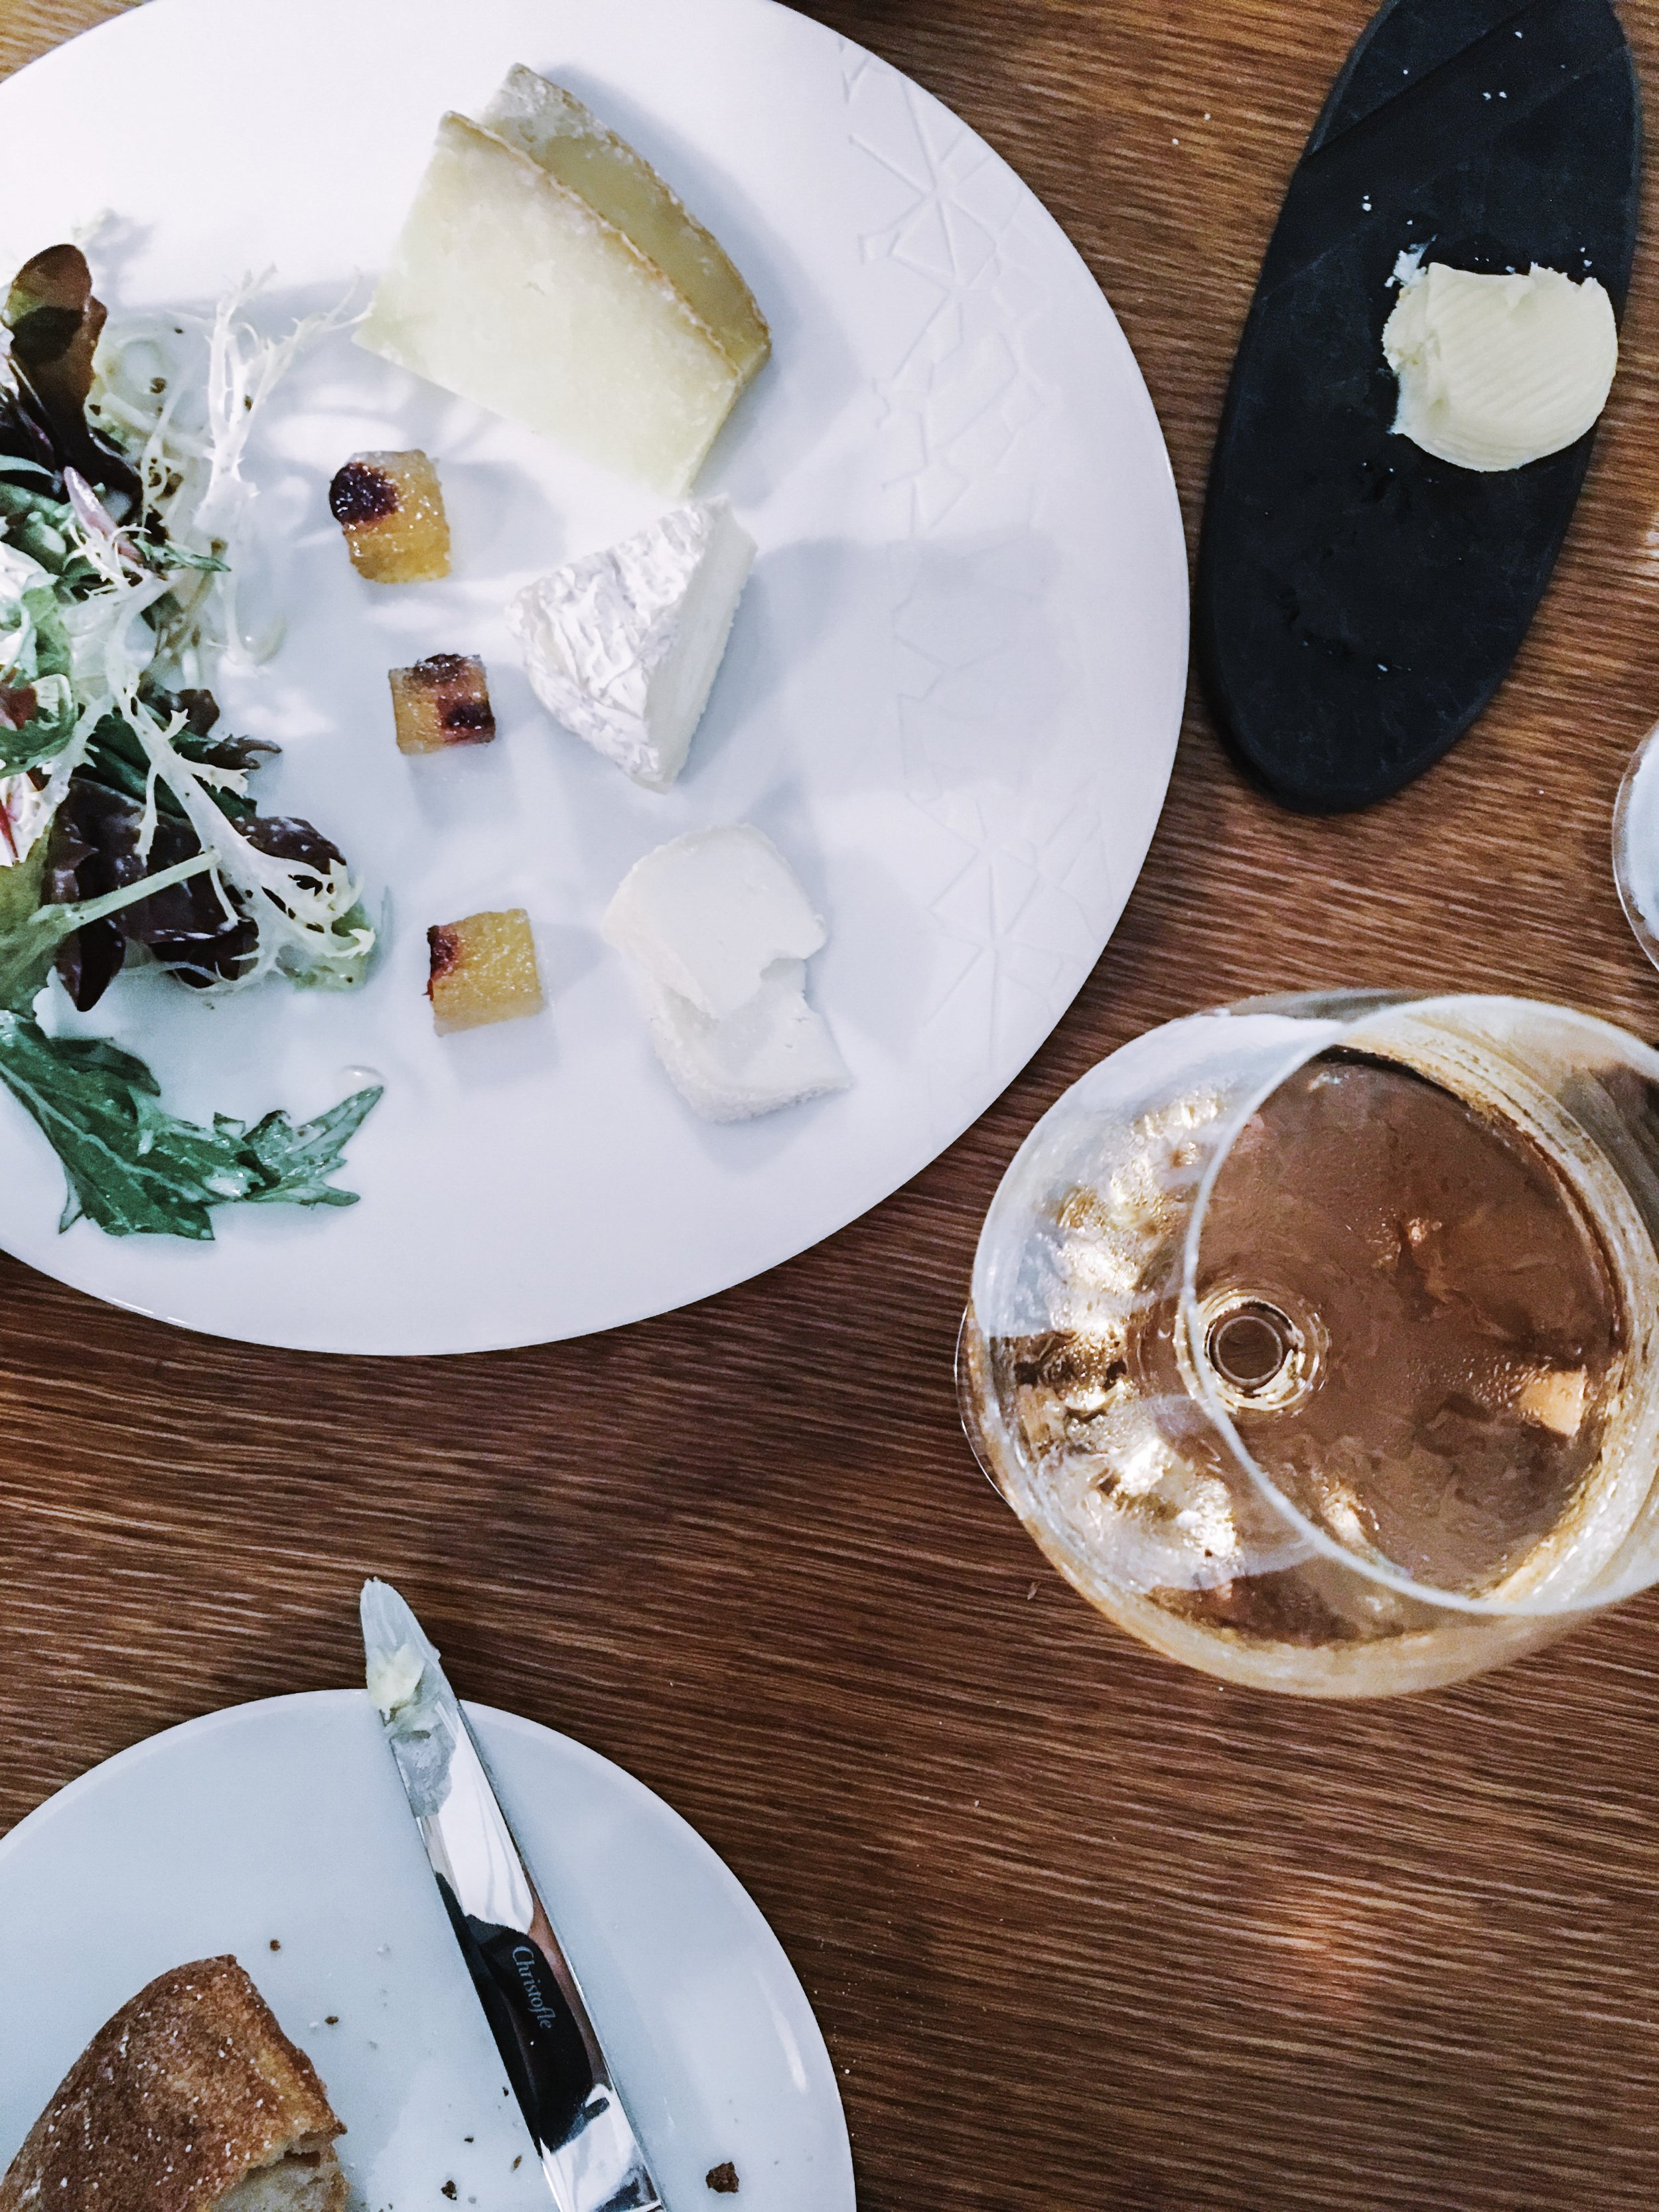 My favorite meal, cheese and wine.